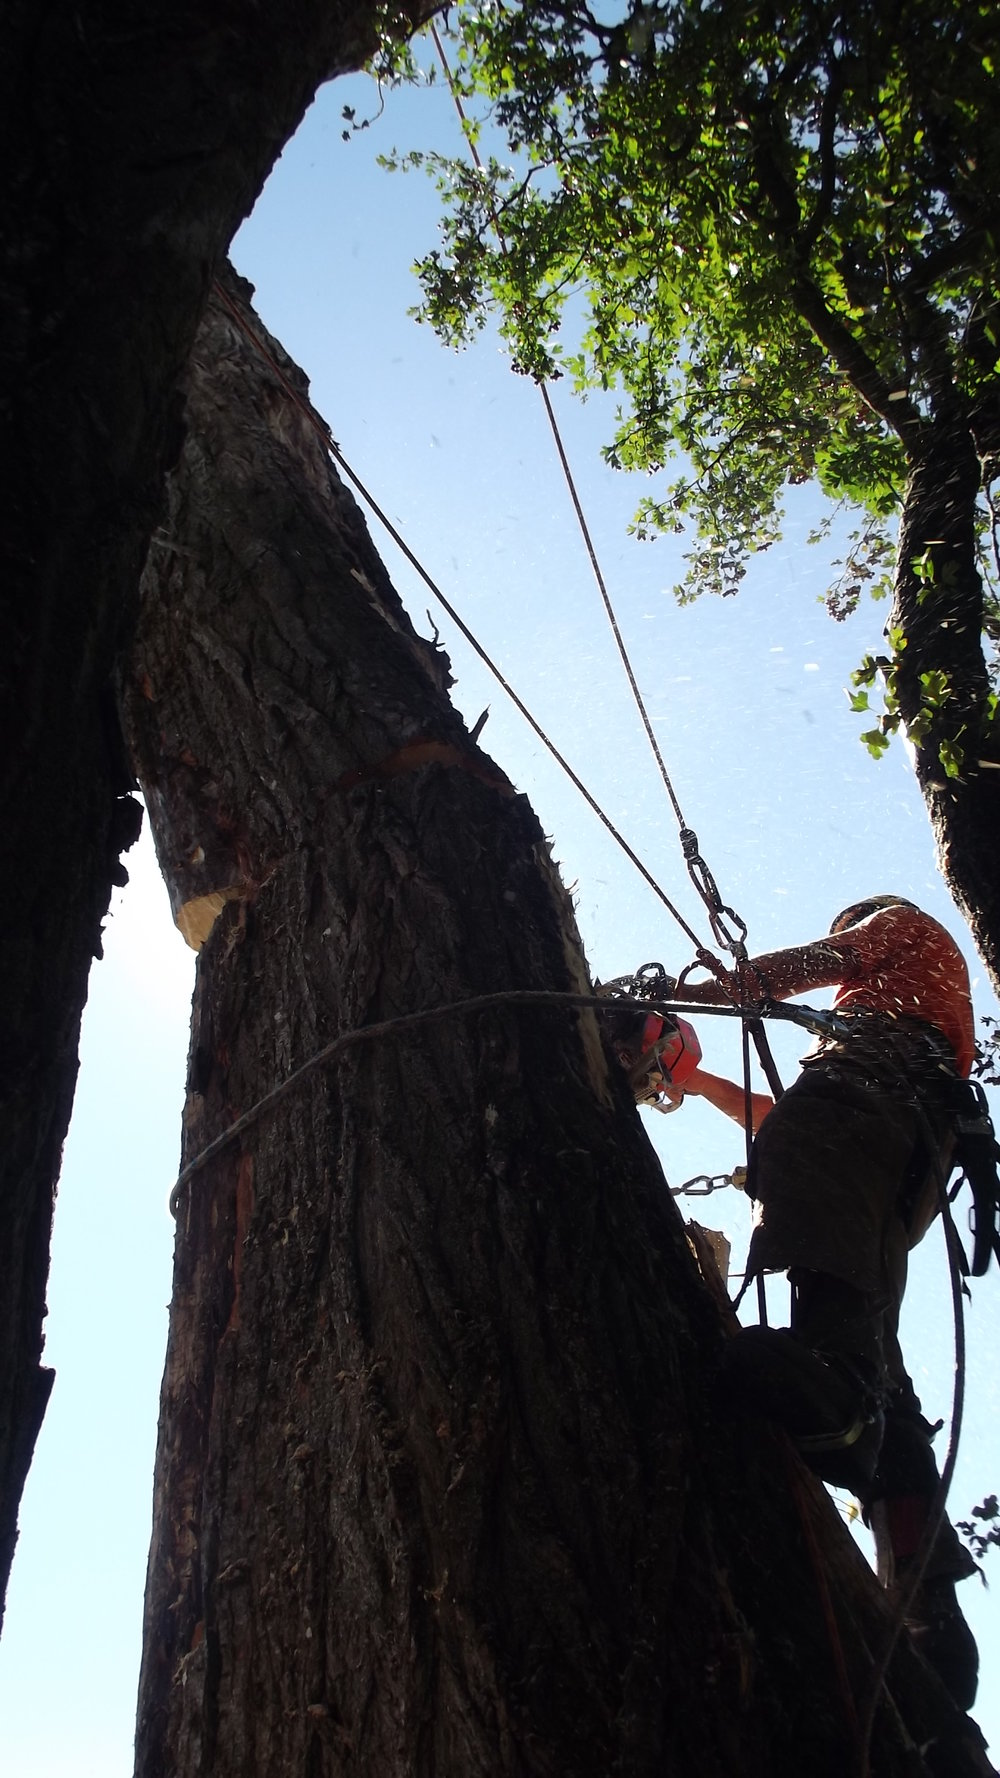 Felling Large Dead Poplar